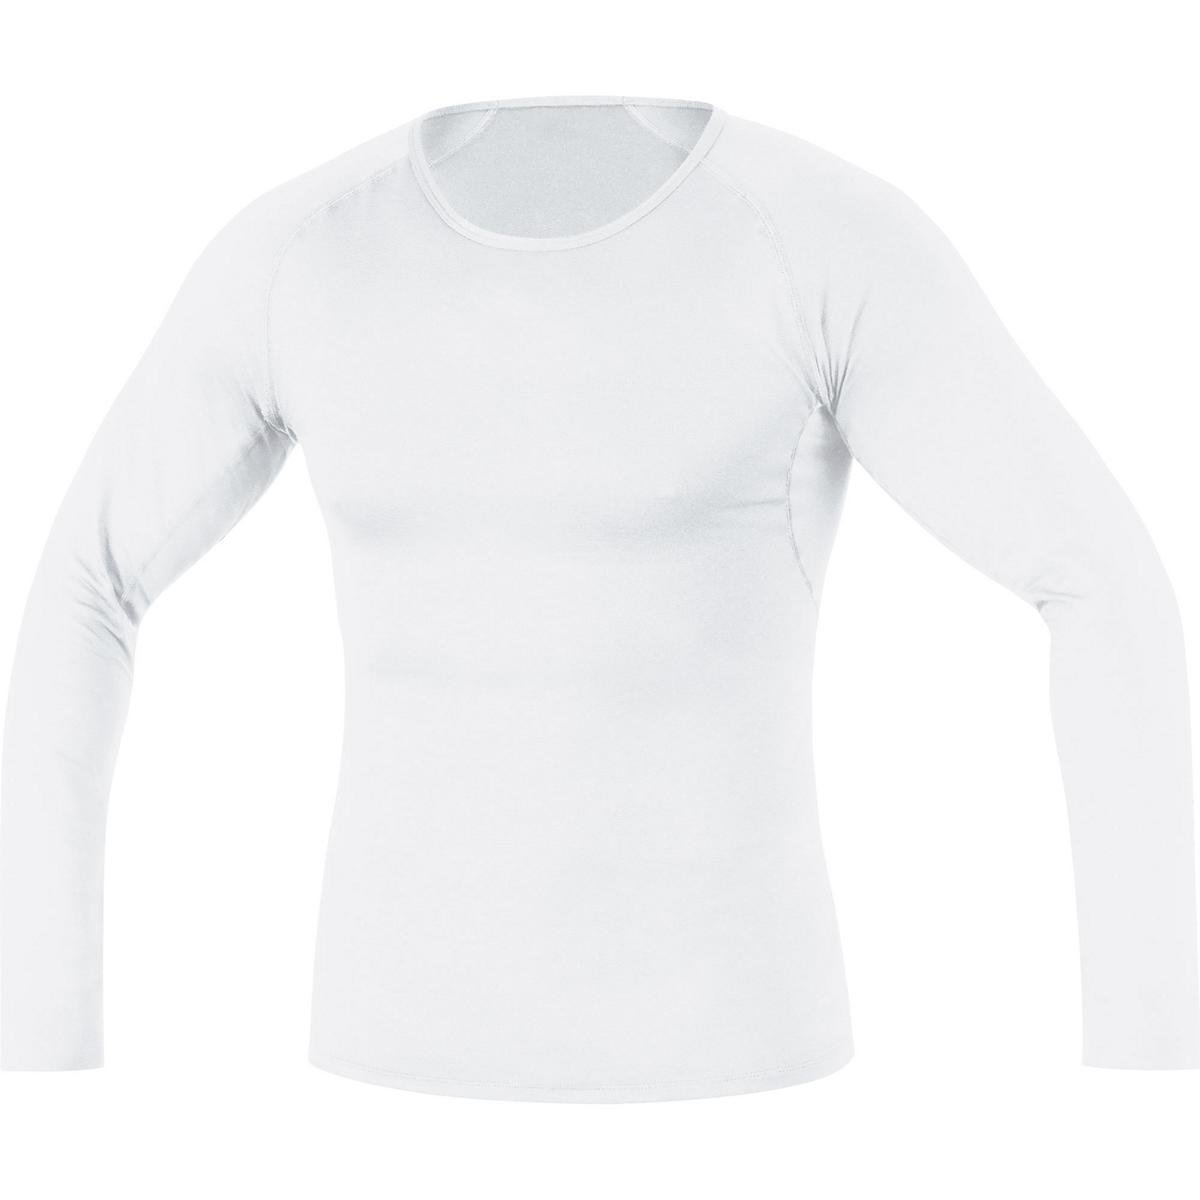 TALLA XL. Gore Base Layer Camiseta de Manga Larga, Hombre